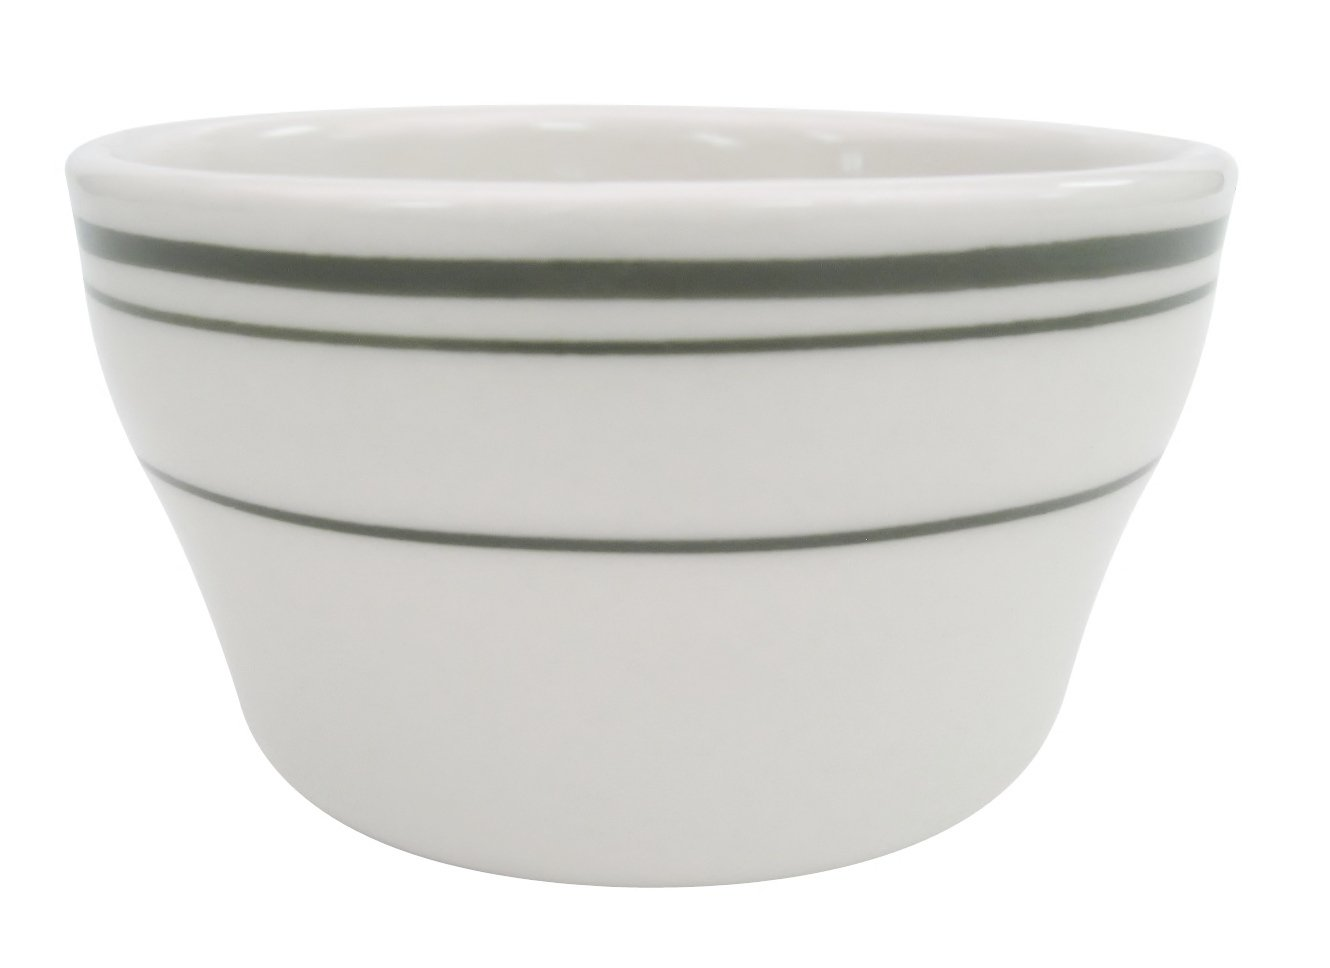 CAC China AZ-95 Arizona 4-3/8-Inch Brown Rim Brown Speckled American White Stoneware Jung Bowl, Box of 36